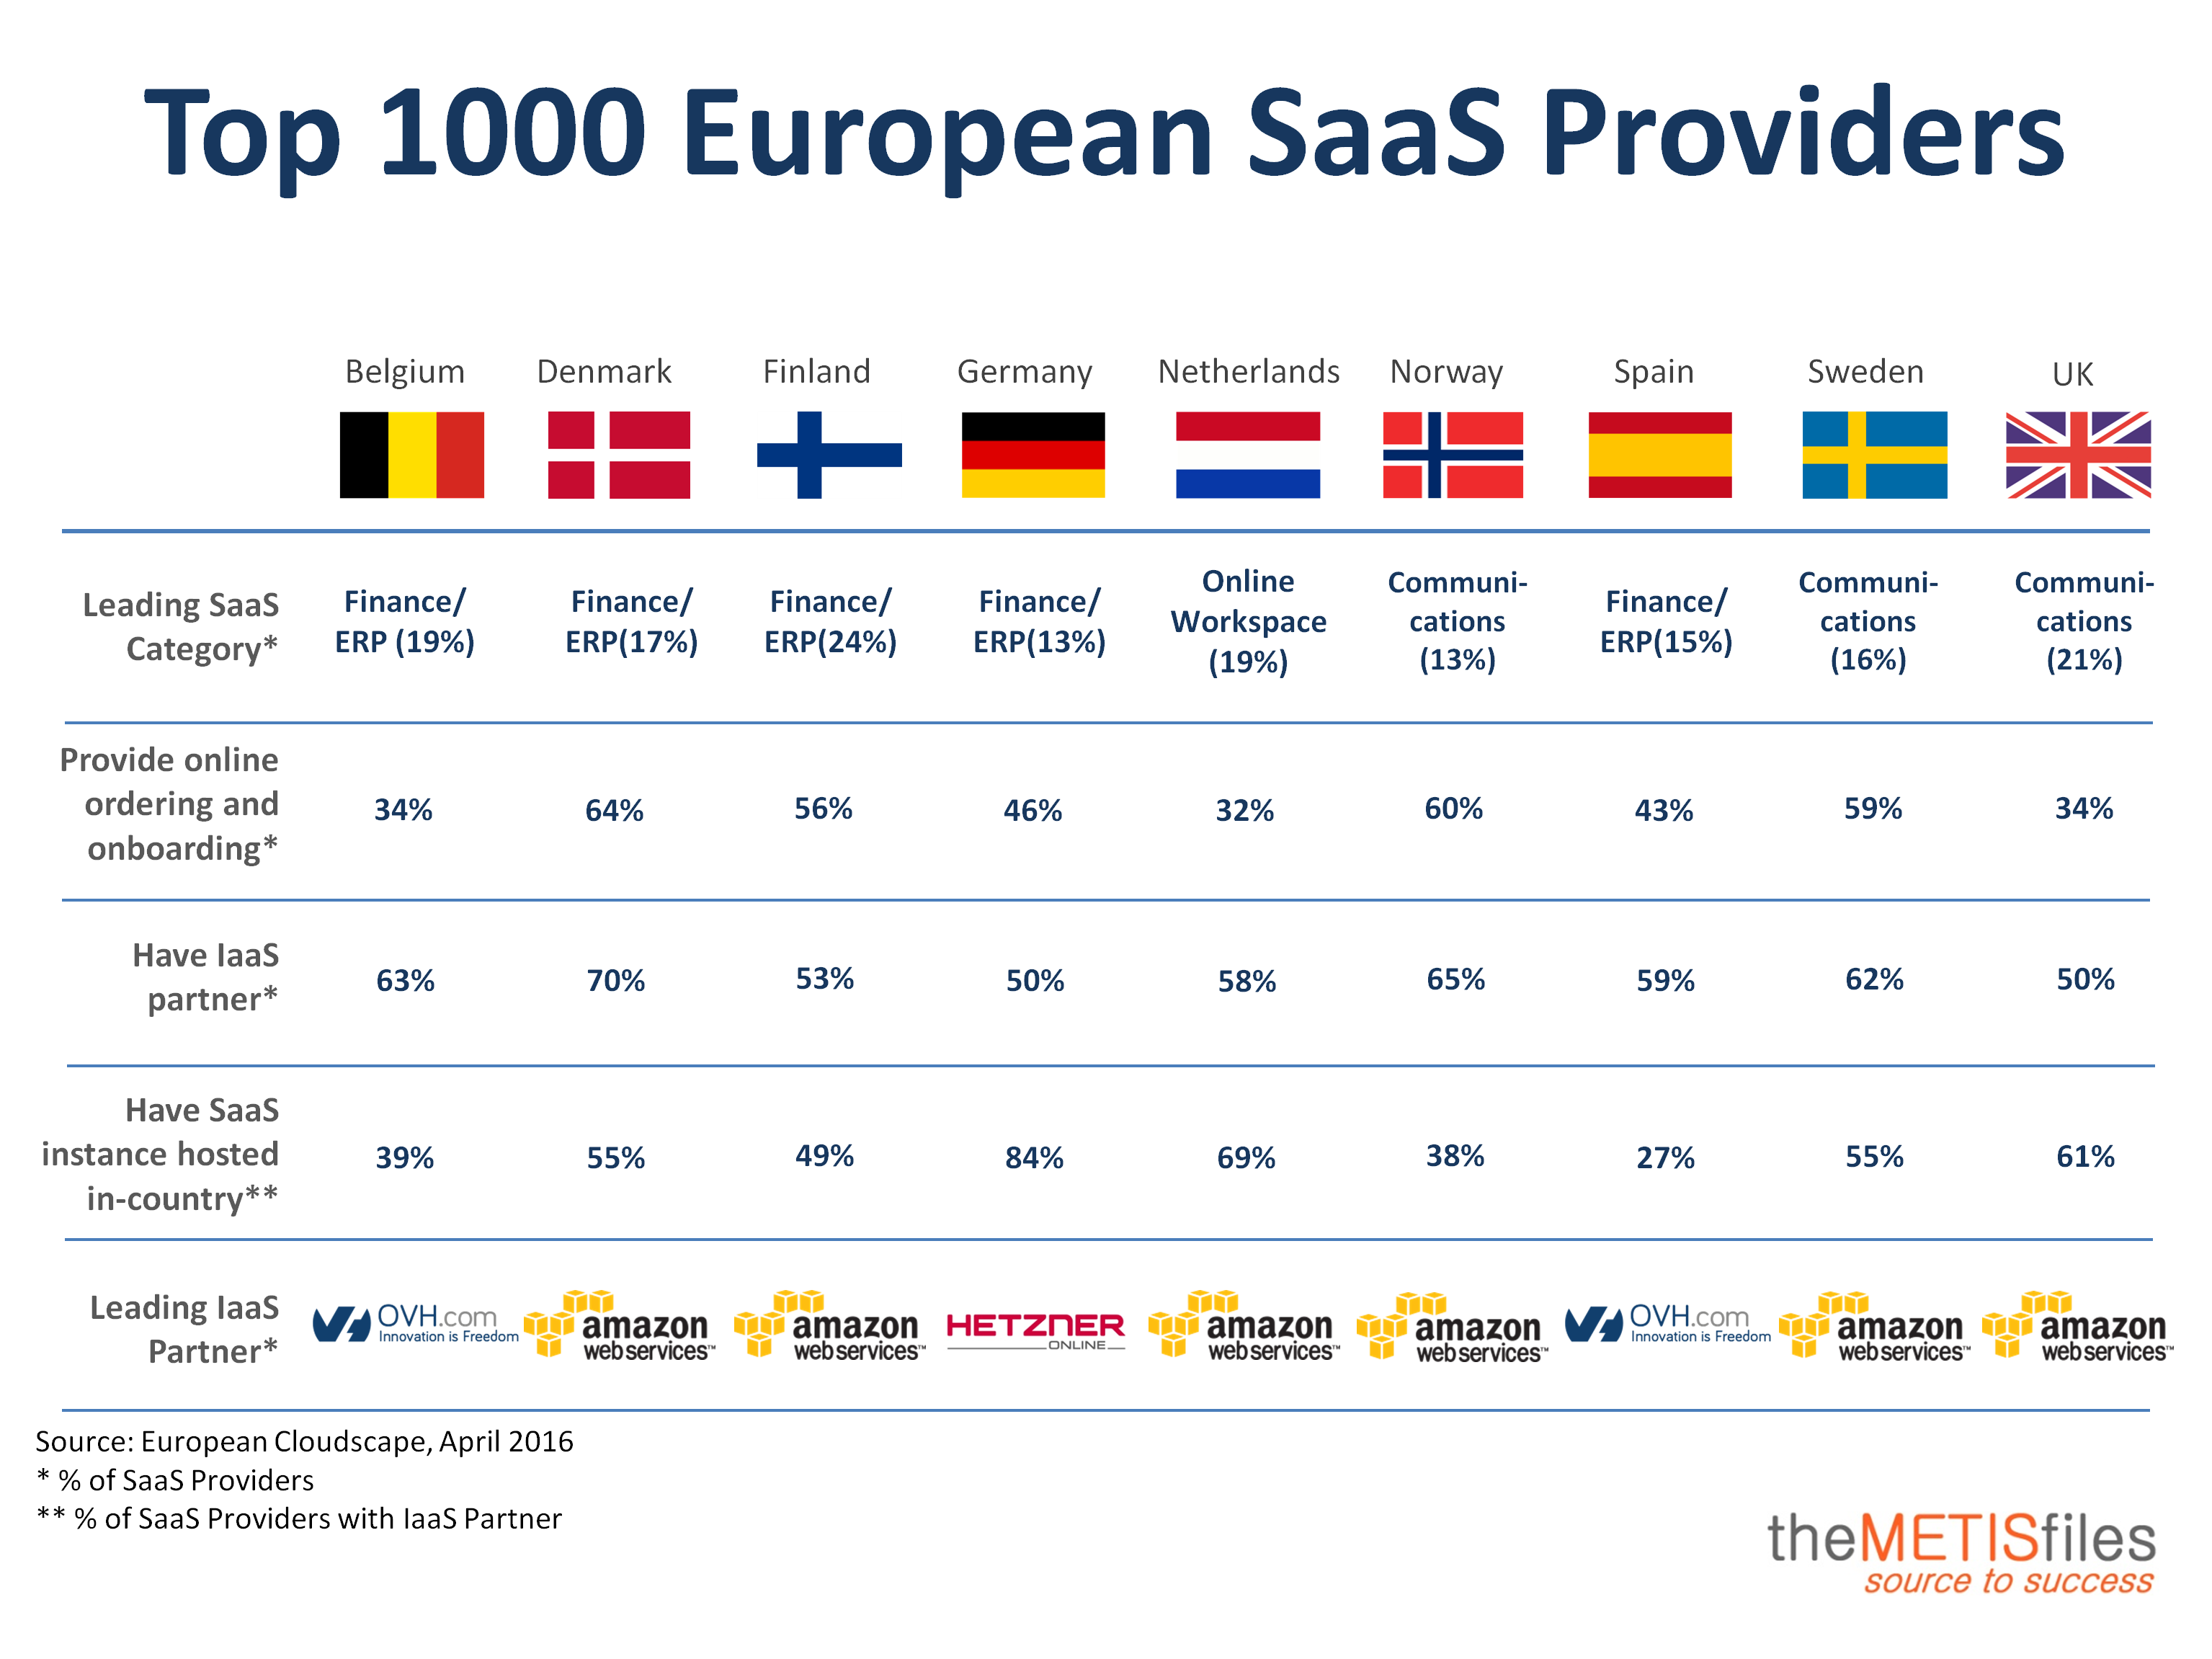 Top 1000 European SaaS Providers